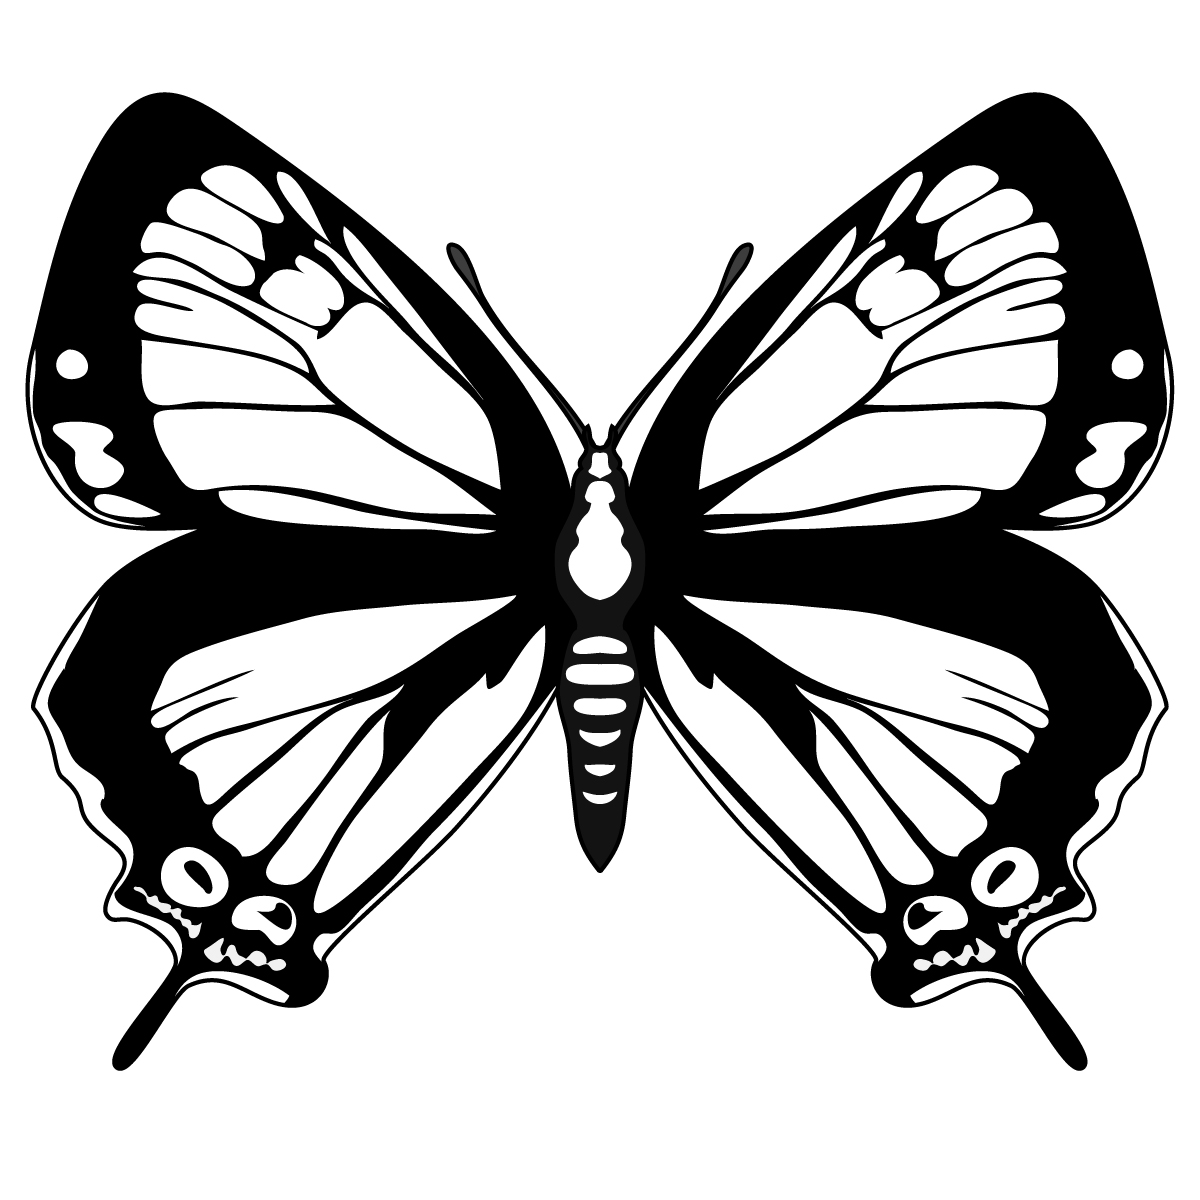 Butterfly Outline Template - Cliparts.co